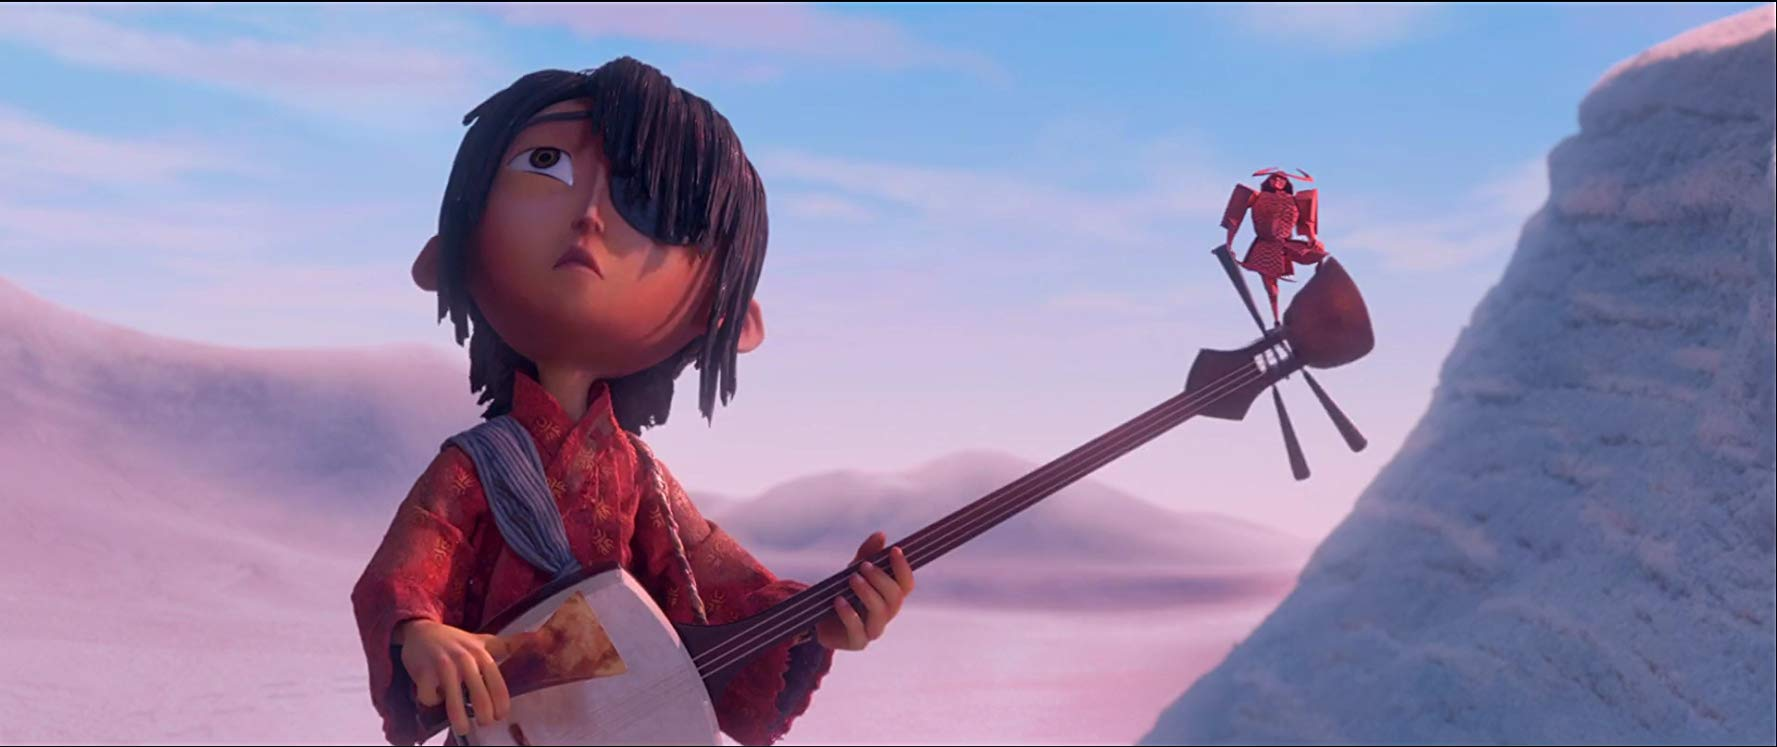 Kubo (voied by Art Parkinson) in Kubo and the Two Strings (2016)